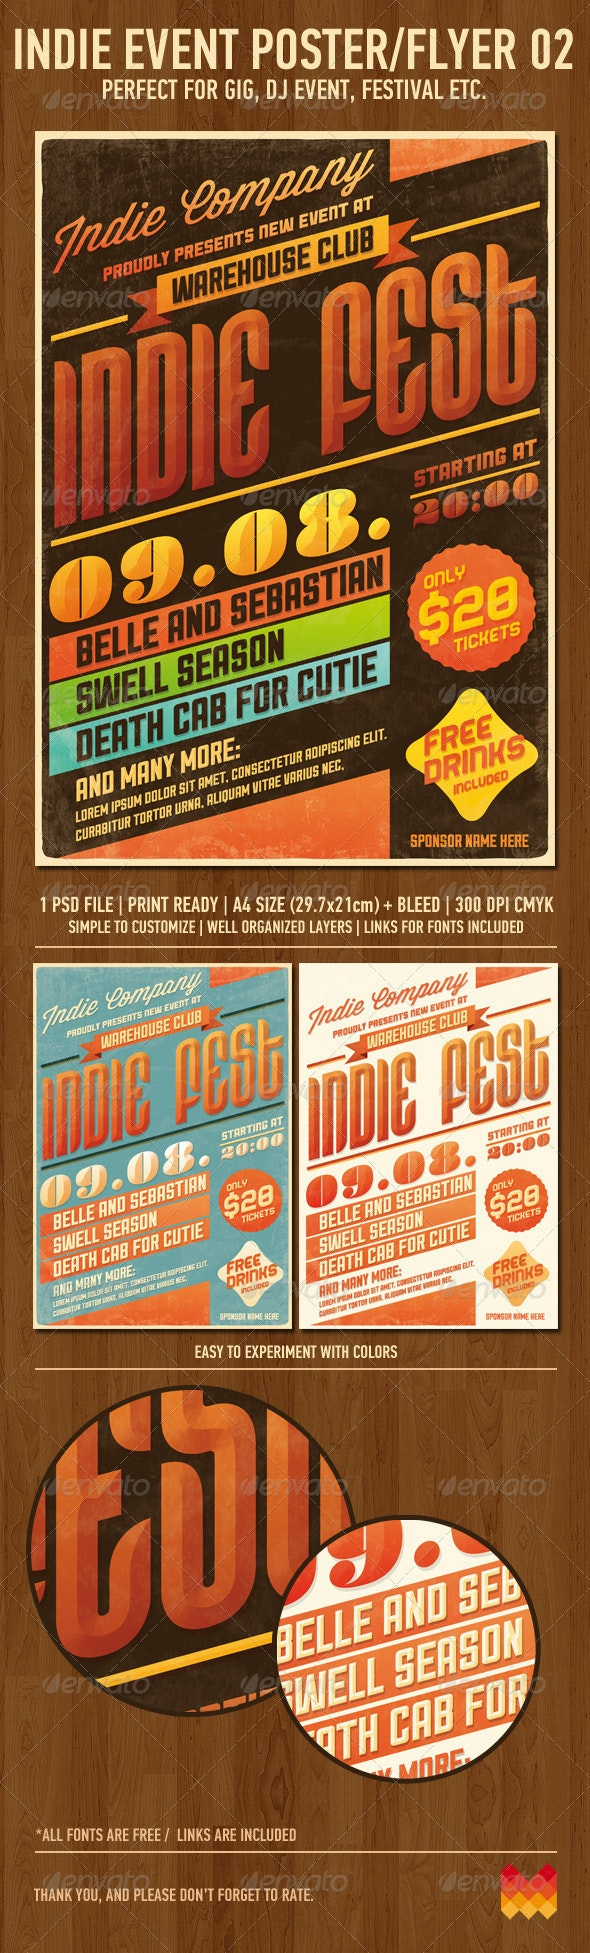 Indie Event Flyer/Poster No2 - Events Flyers